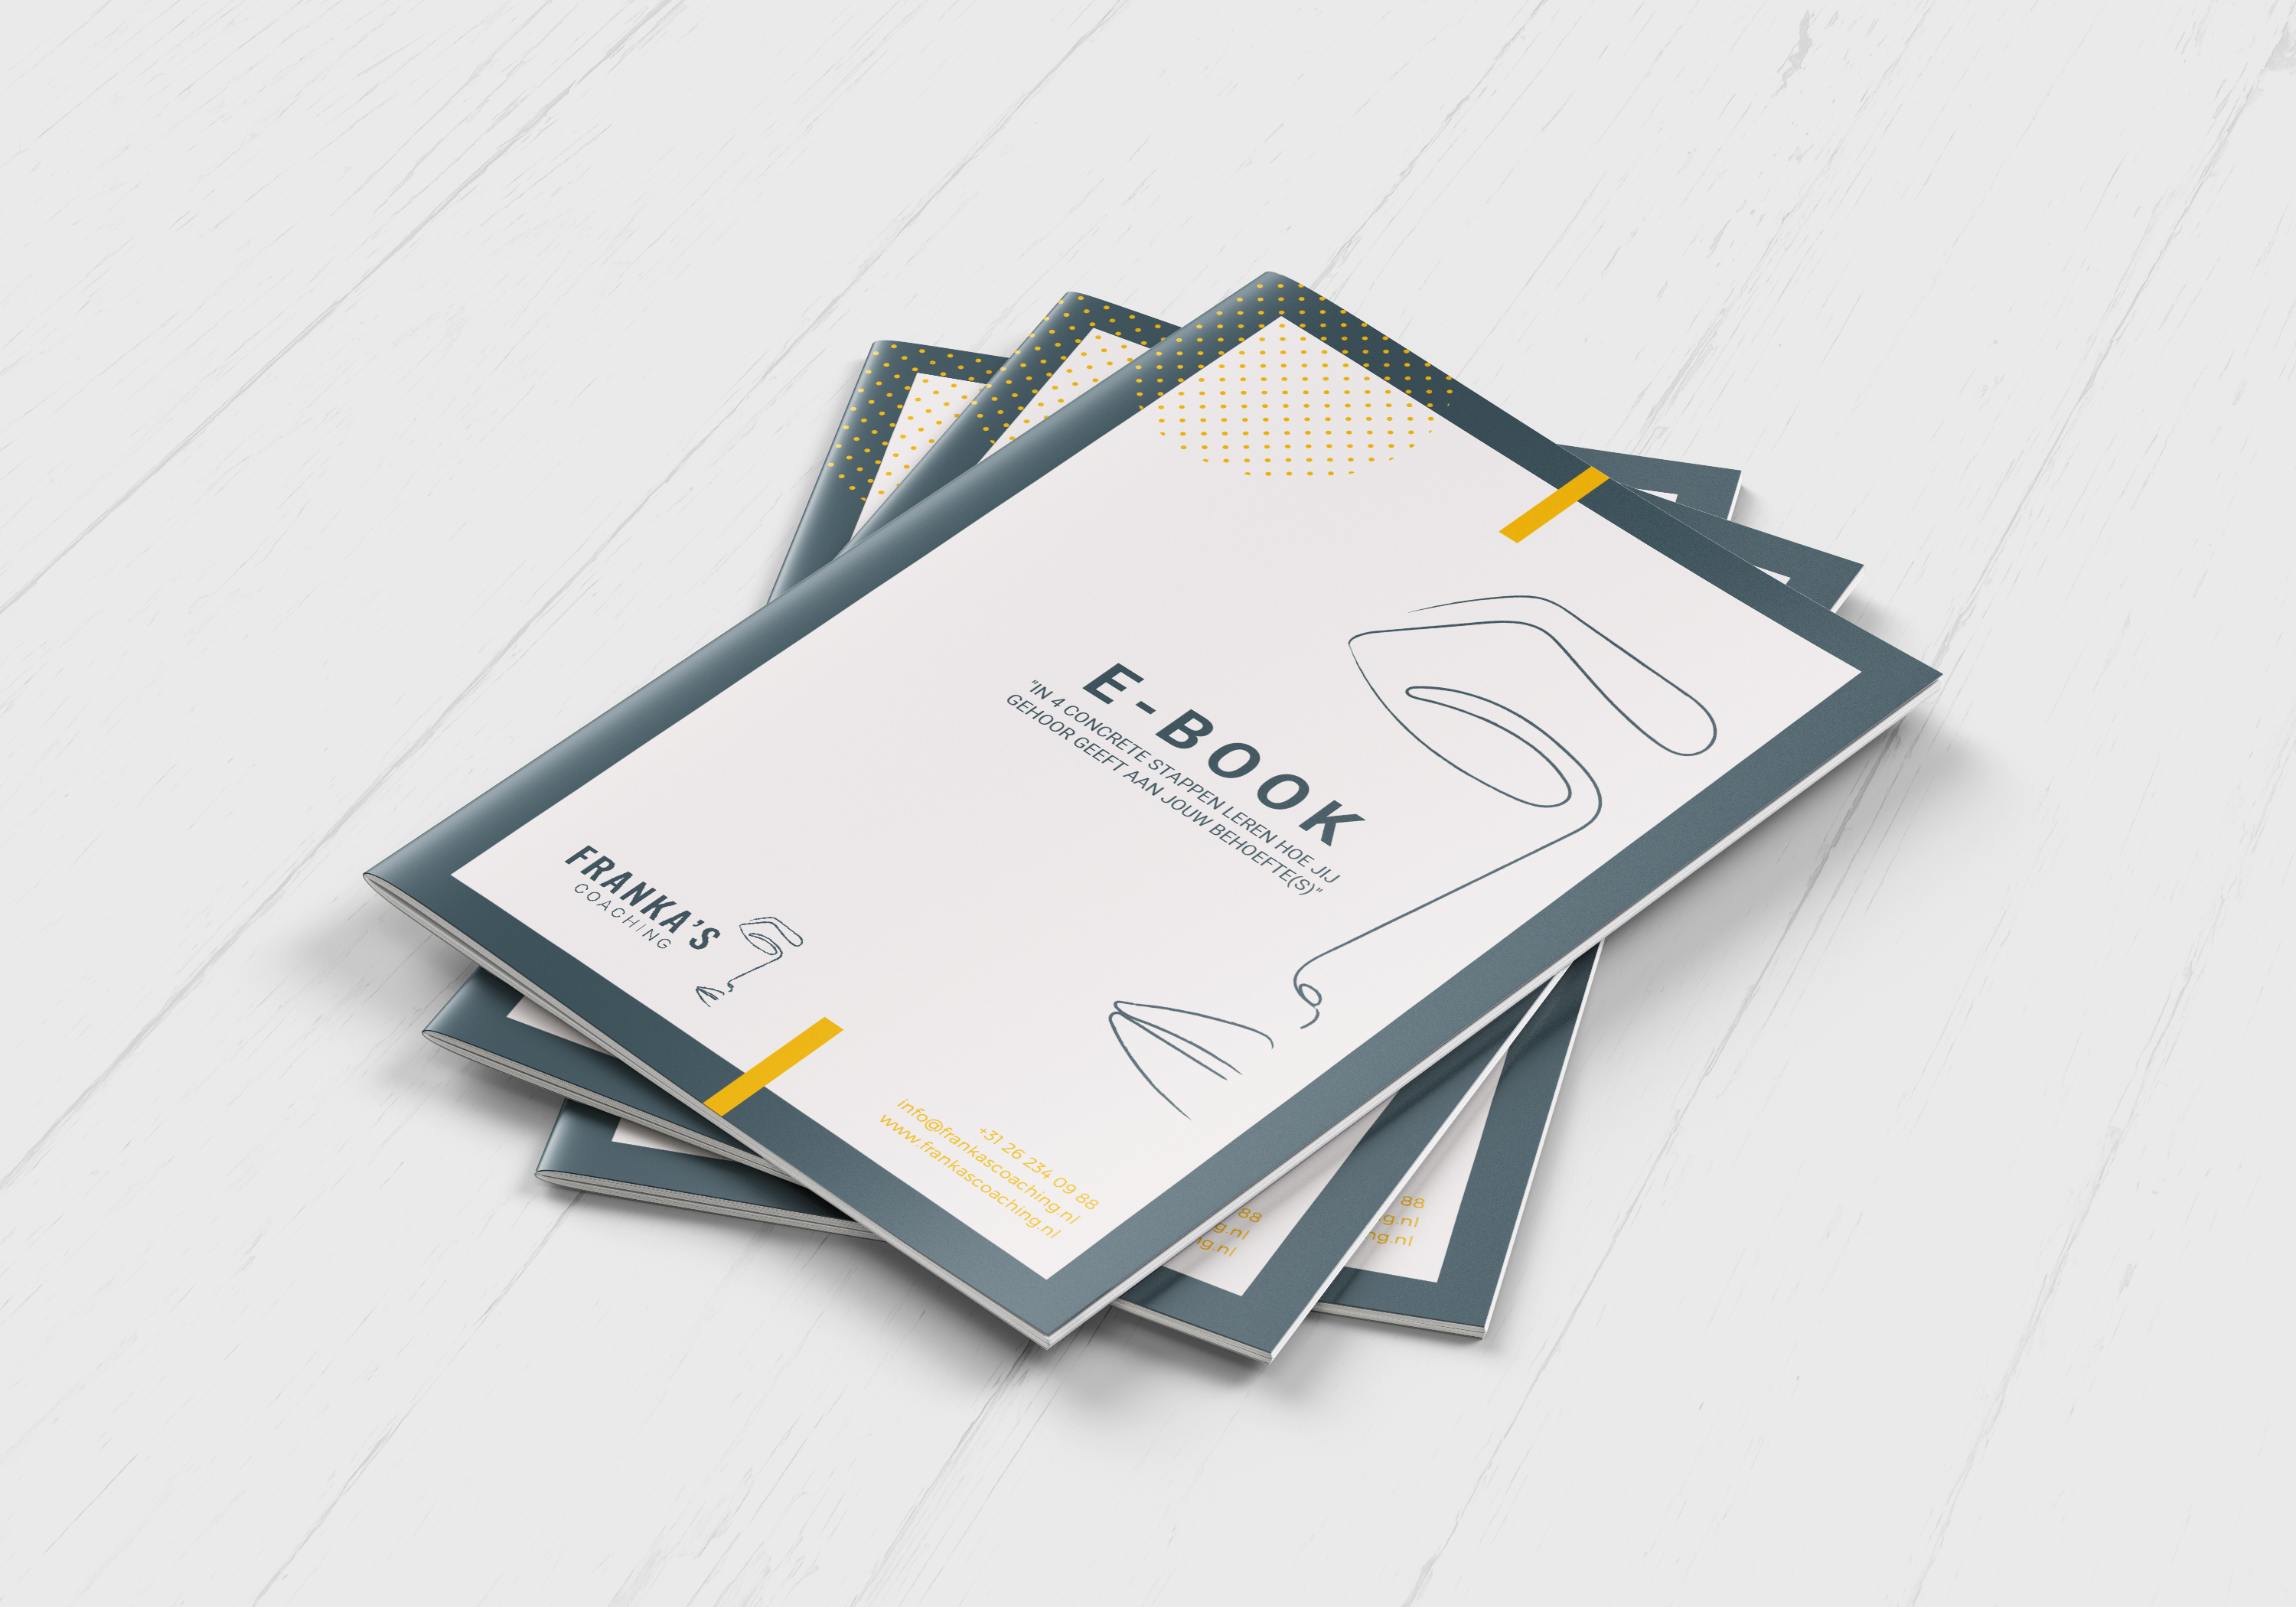 Franka's Coaching - e-book mockup - stapel - hout textuur achtergrond - def